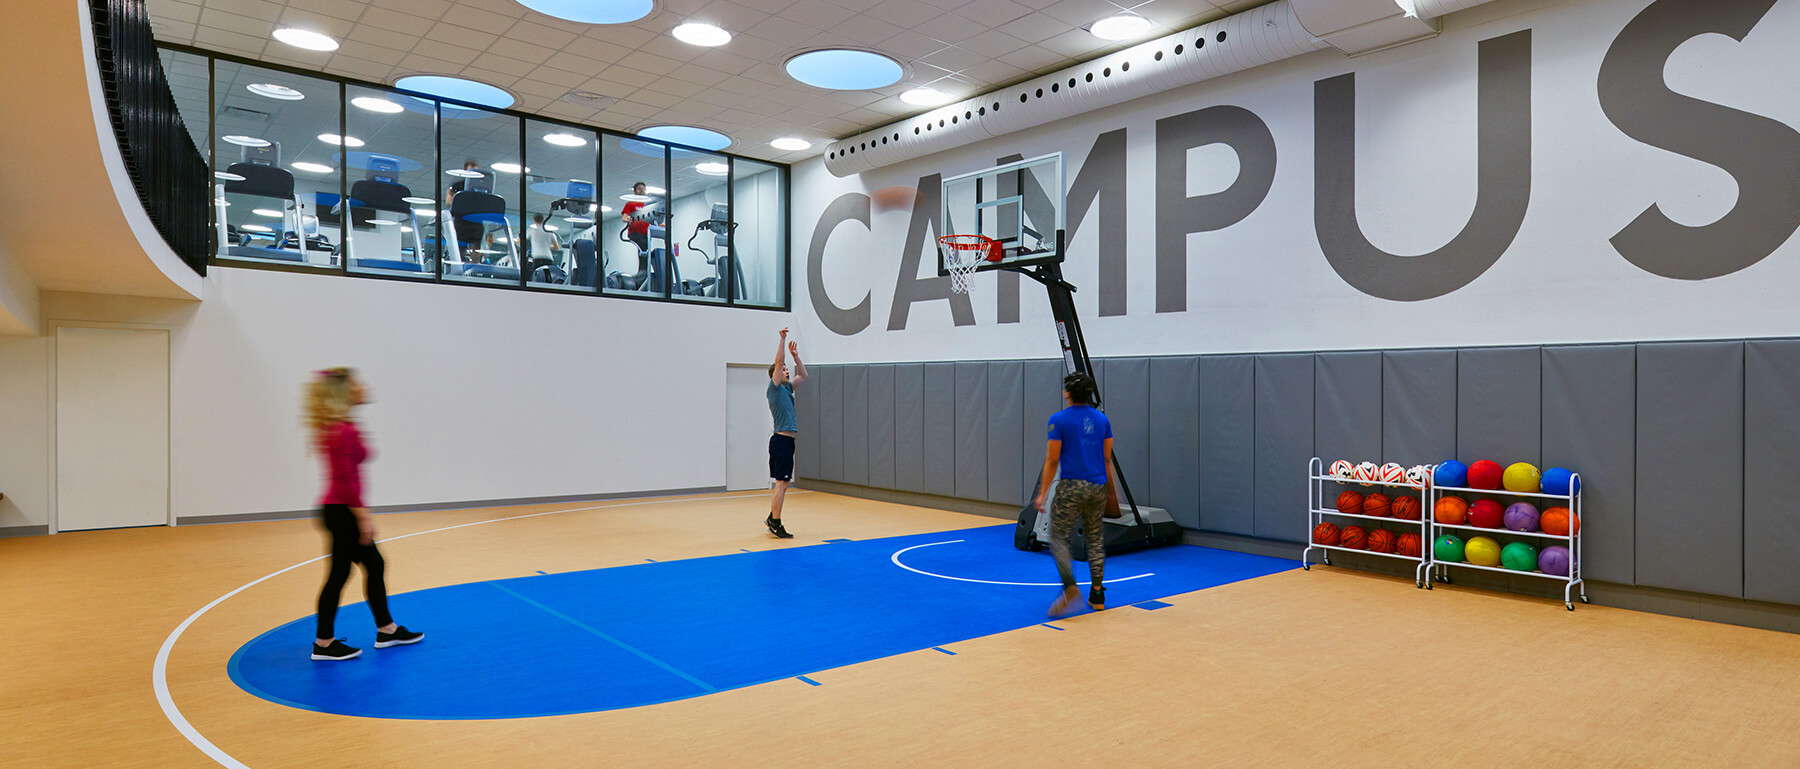 Fitness Centre & Indoor Basketball Court​